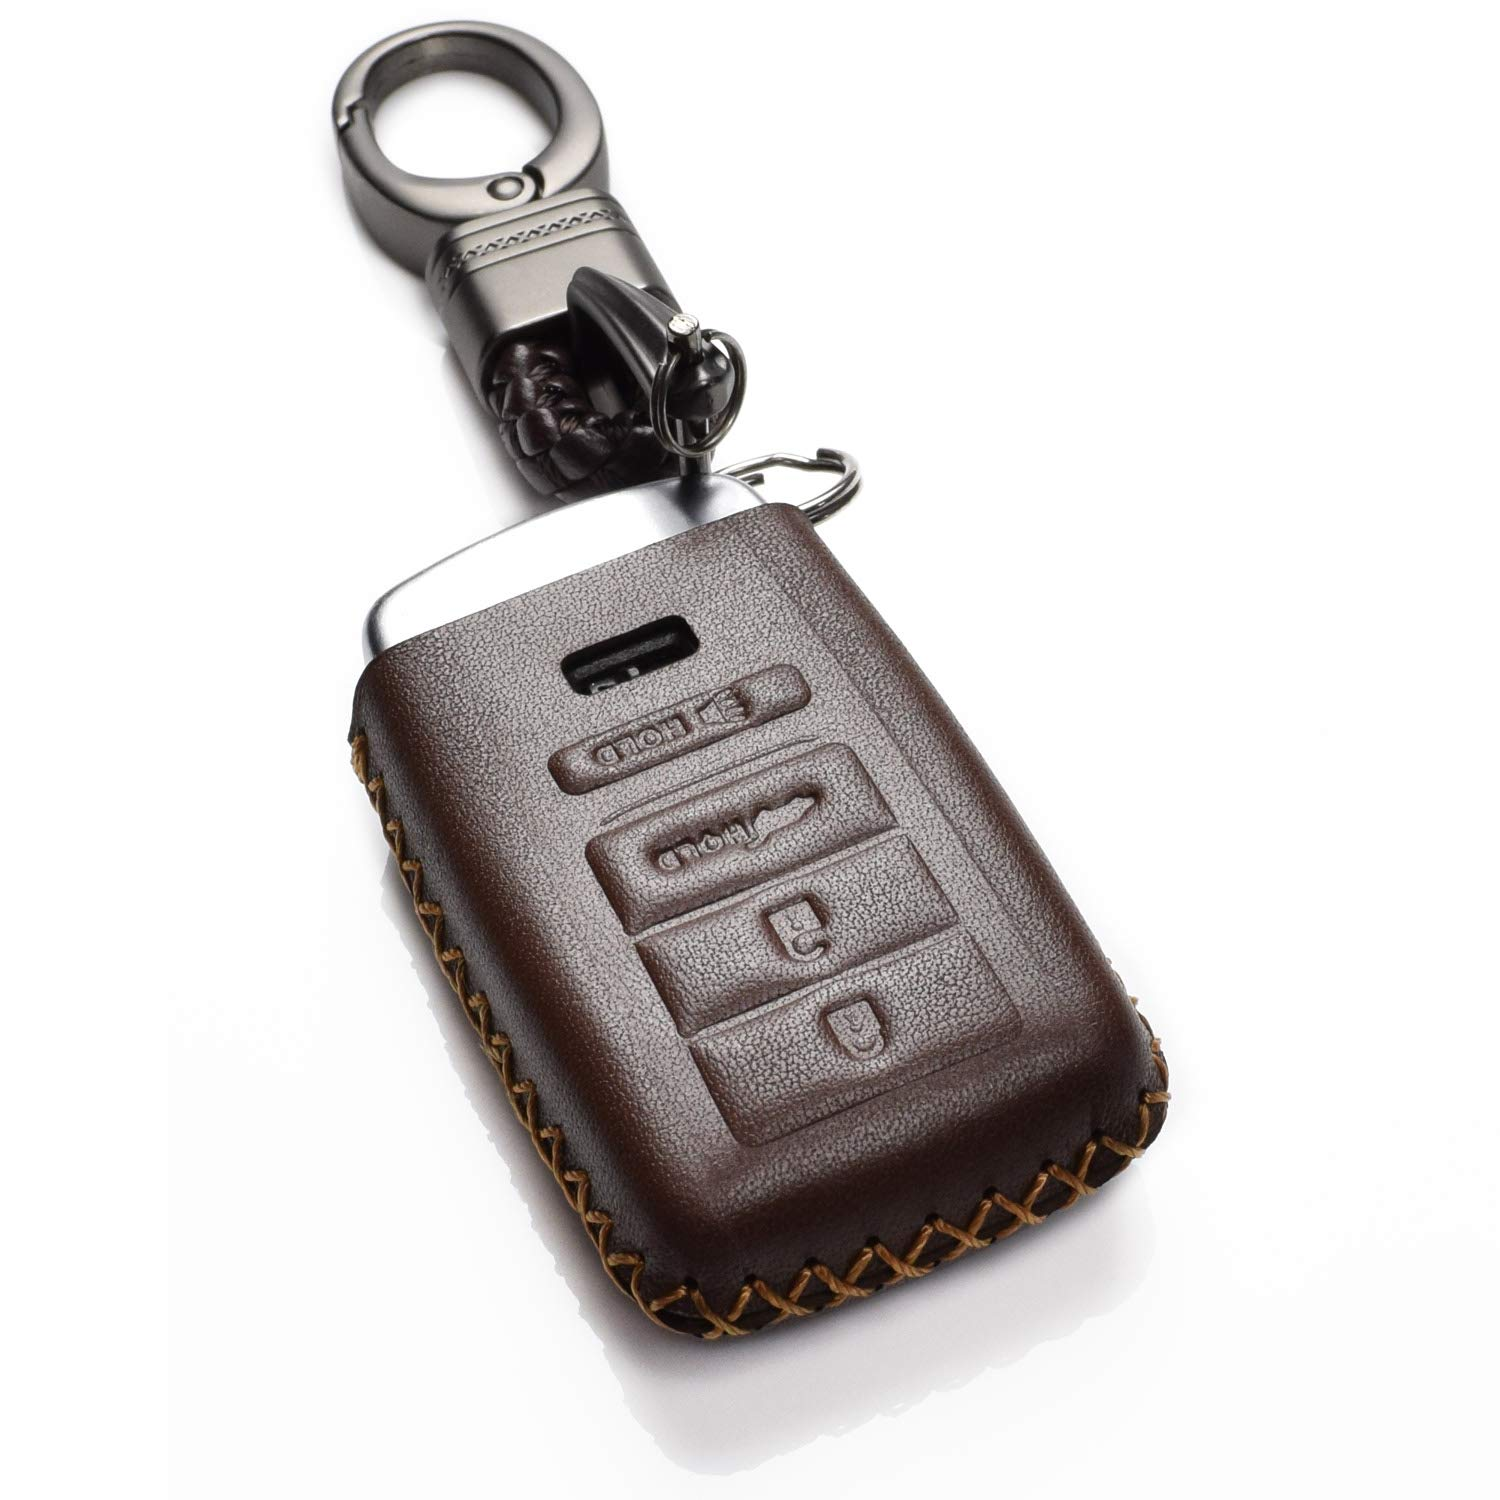 Acura ILX 4 Buttons, Red Acura TLX Vitodeco Genuine Leather Smart Key Keyless Remote Entry Fob Case Cover with Key Chain for Acura RLX